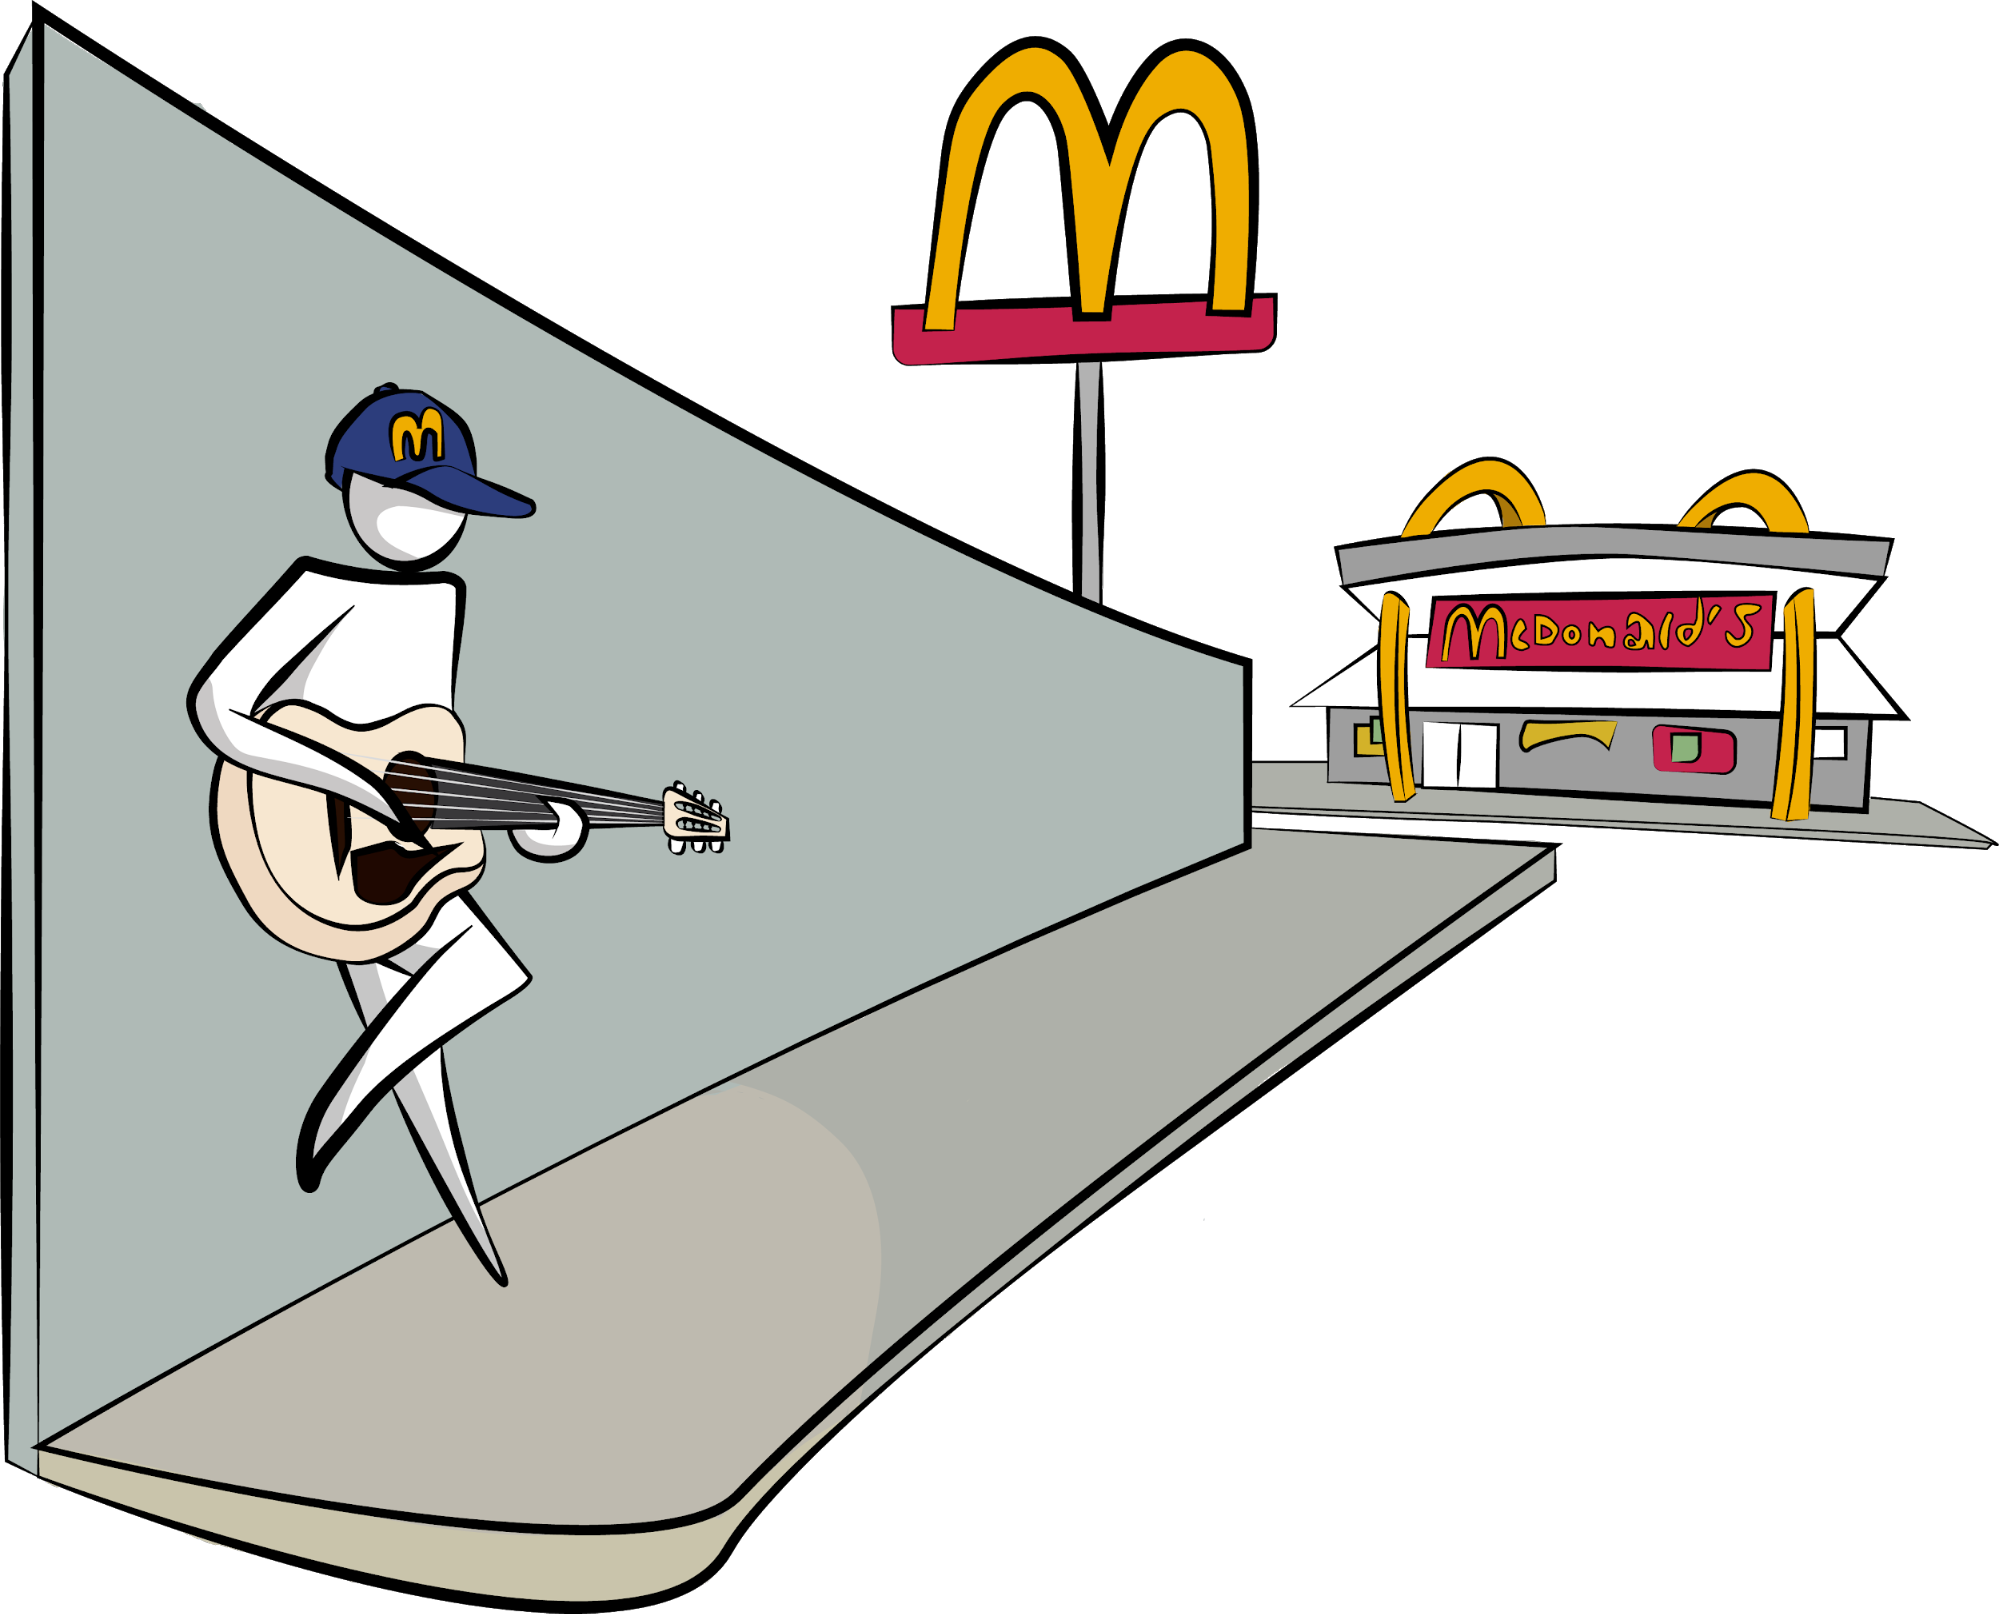 A person playing a guitar on a street corner across McDonald's